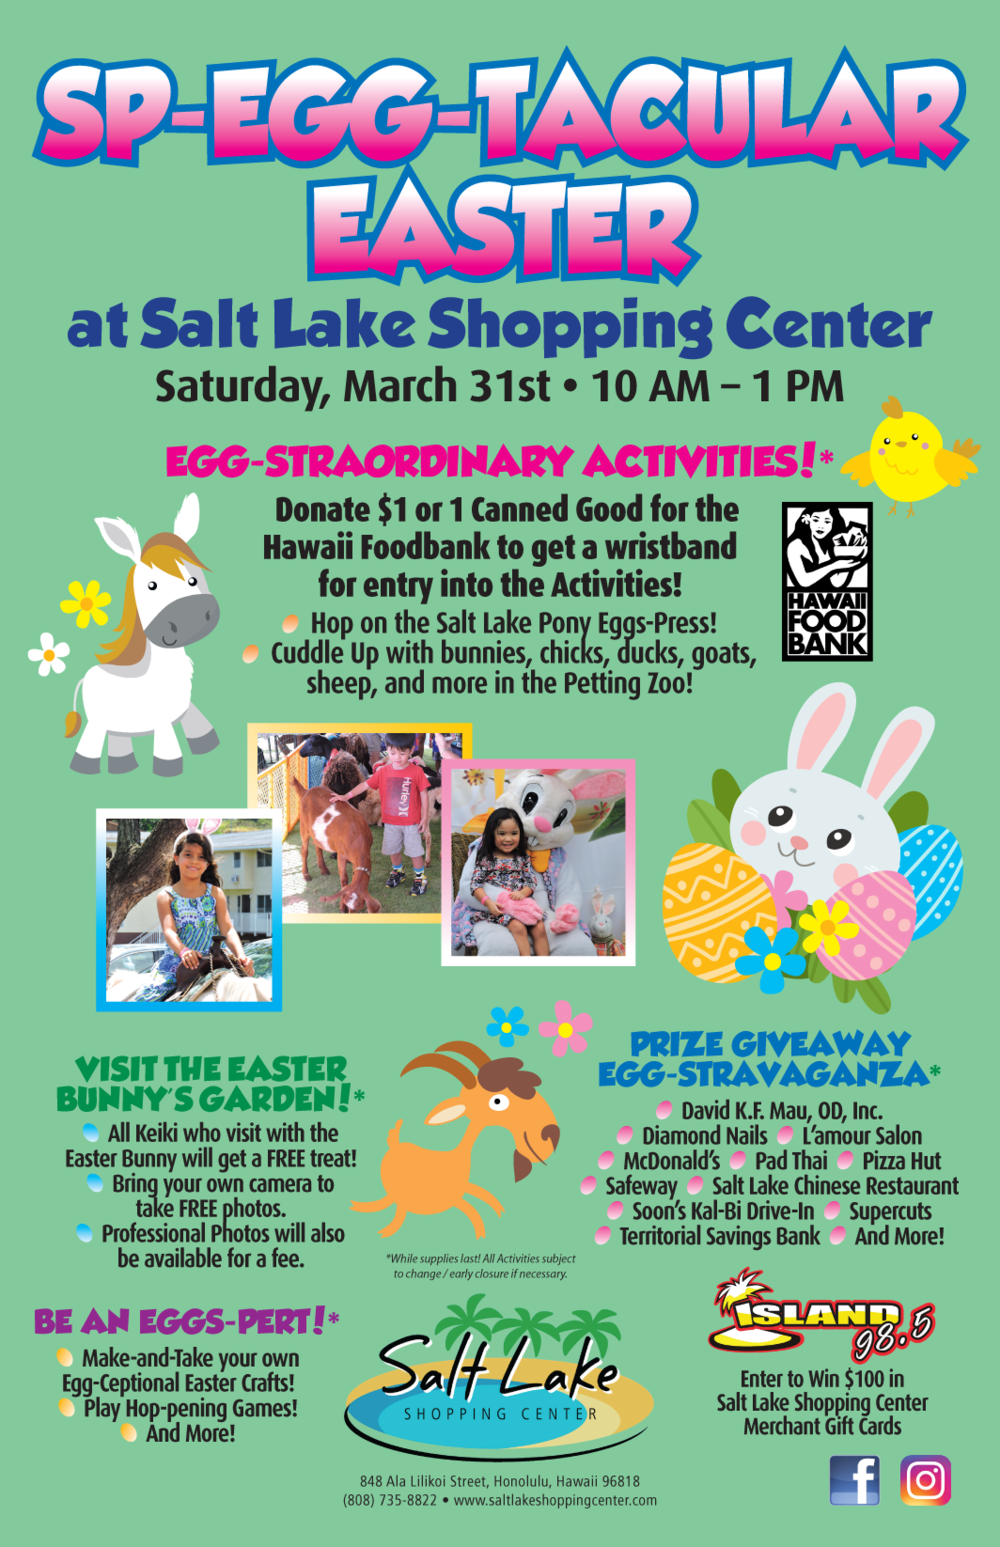 SLSC-easter-poster-022418-96png.png